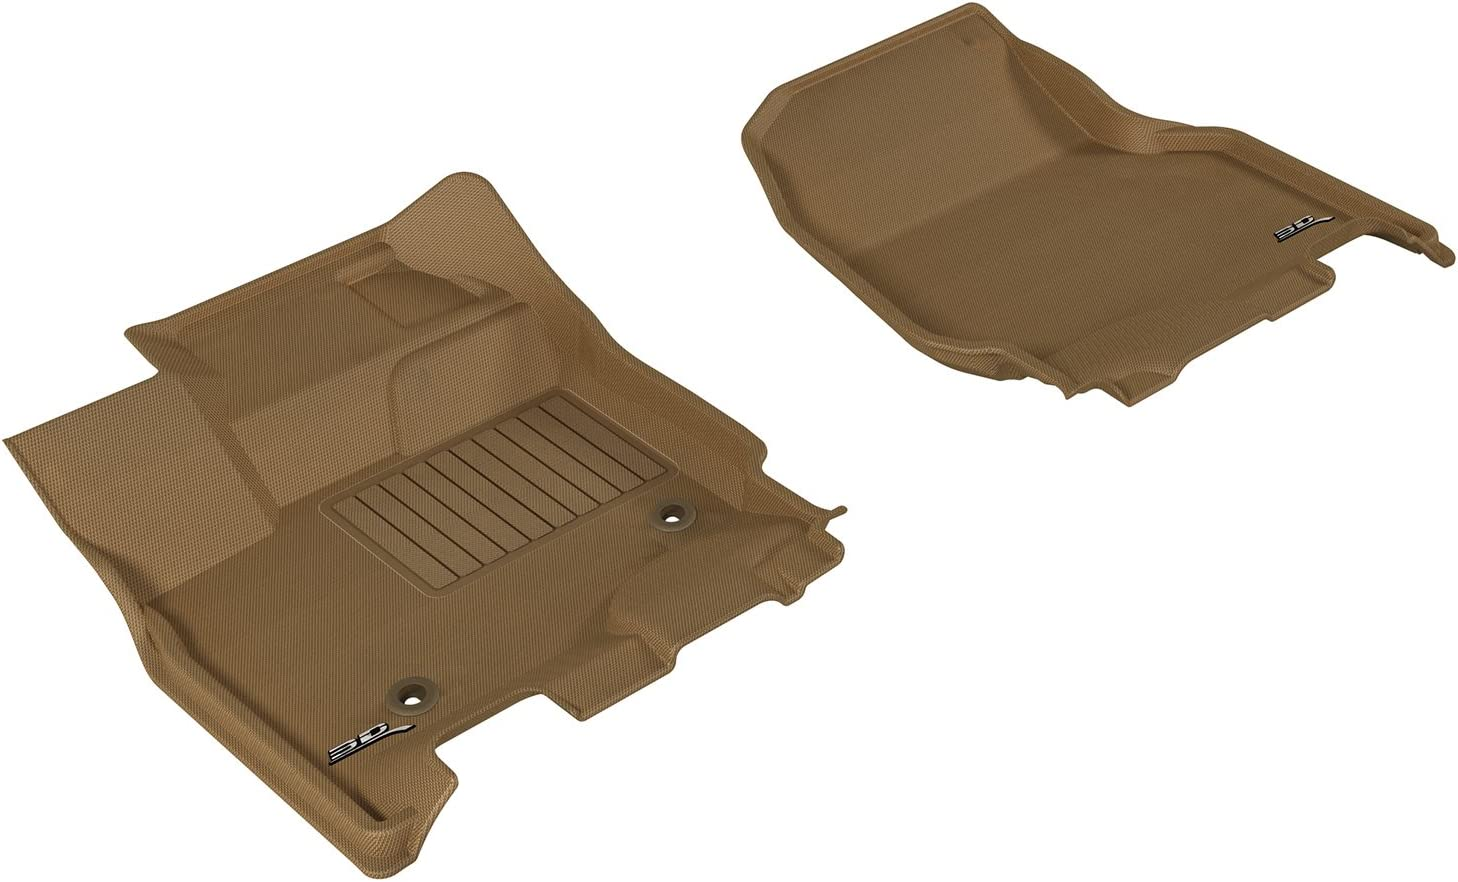 3D MAXpider First Row Custom Fit Floor Mat for Select Ford F-150 Supercrew Models Tan Kagu Rubber